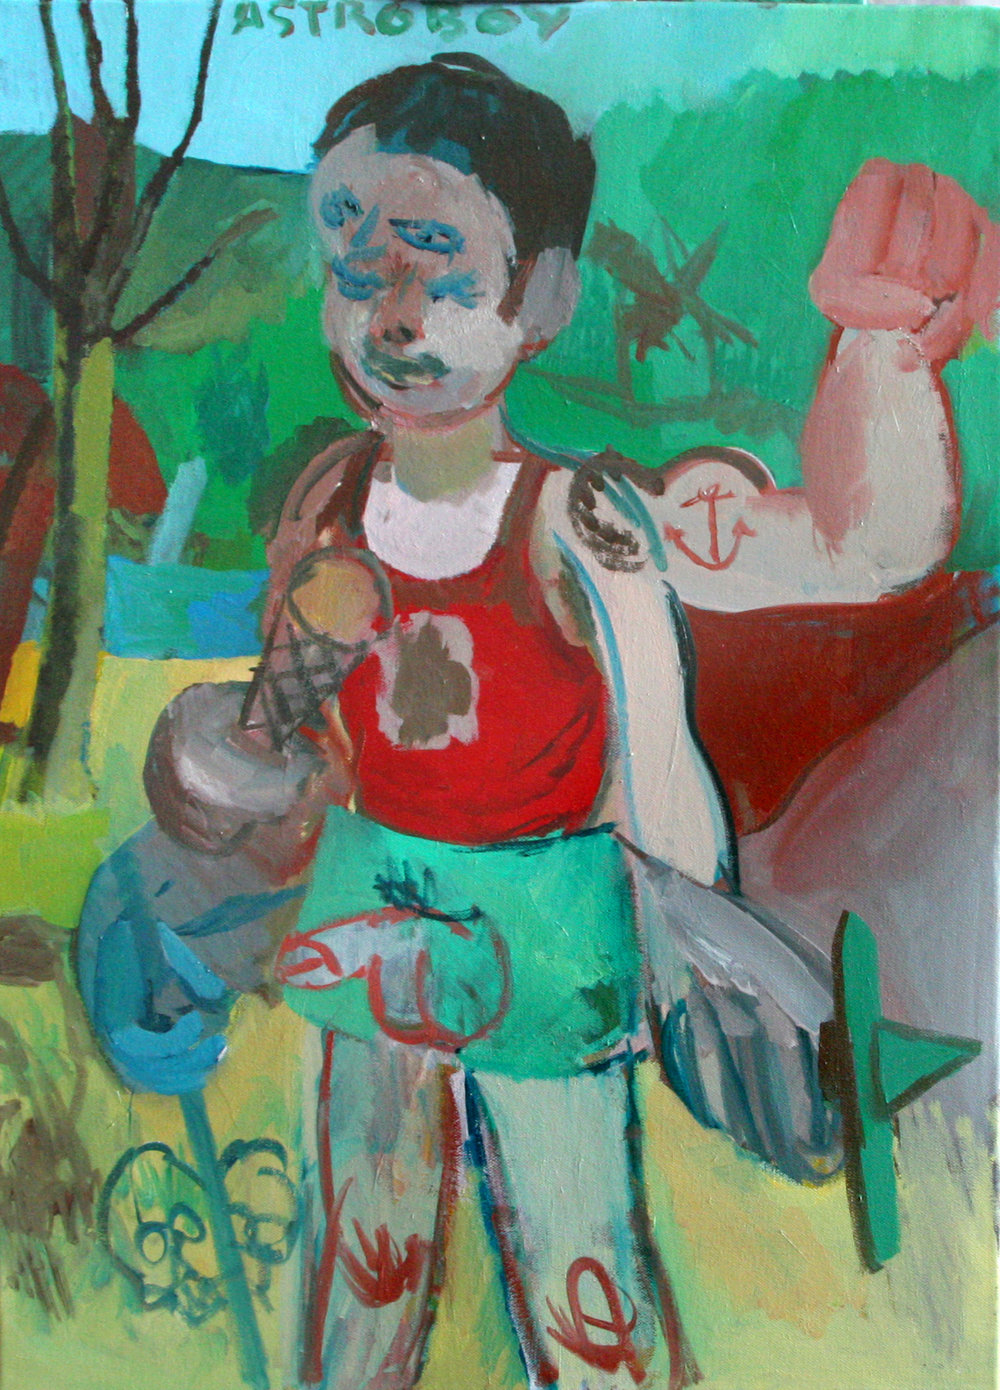 """Astro Boy"" 2012   Oil on canvas. 70 x 50 cm"